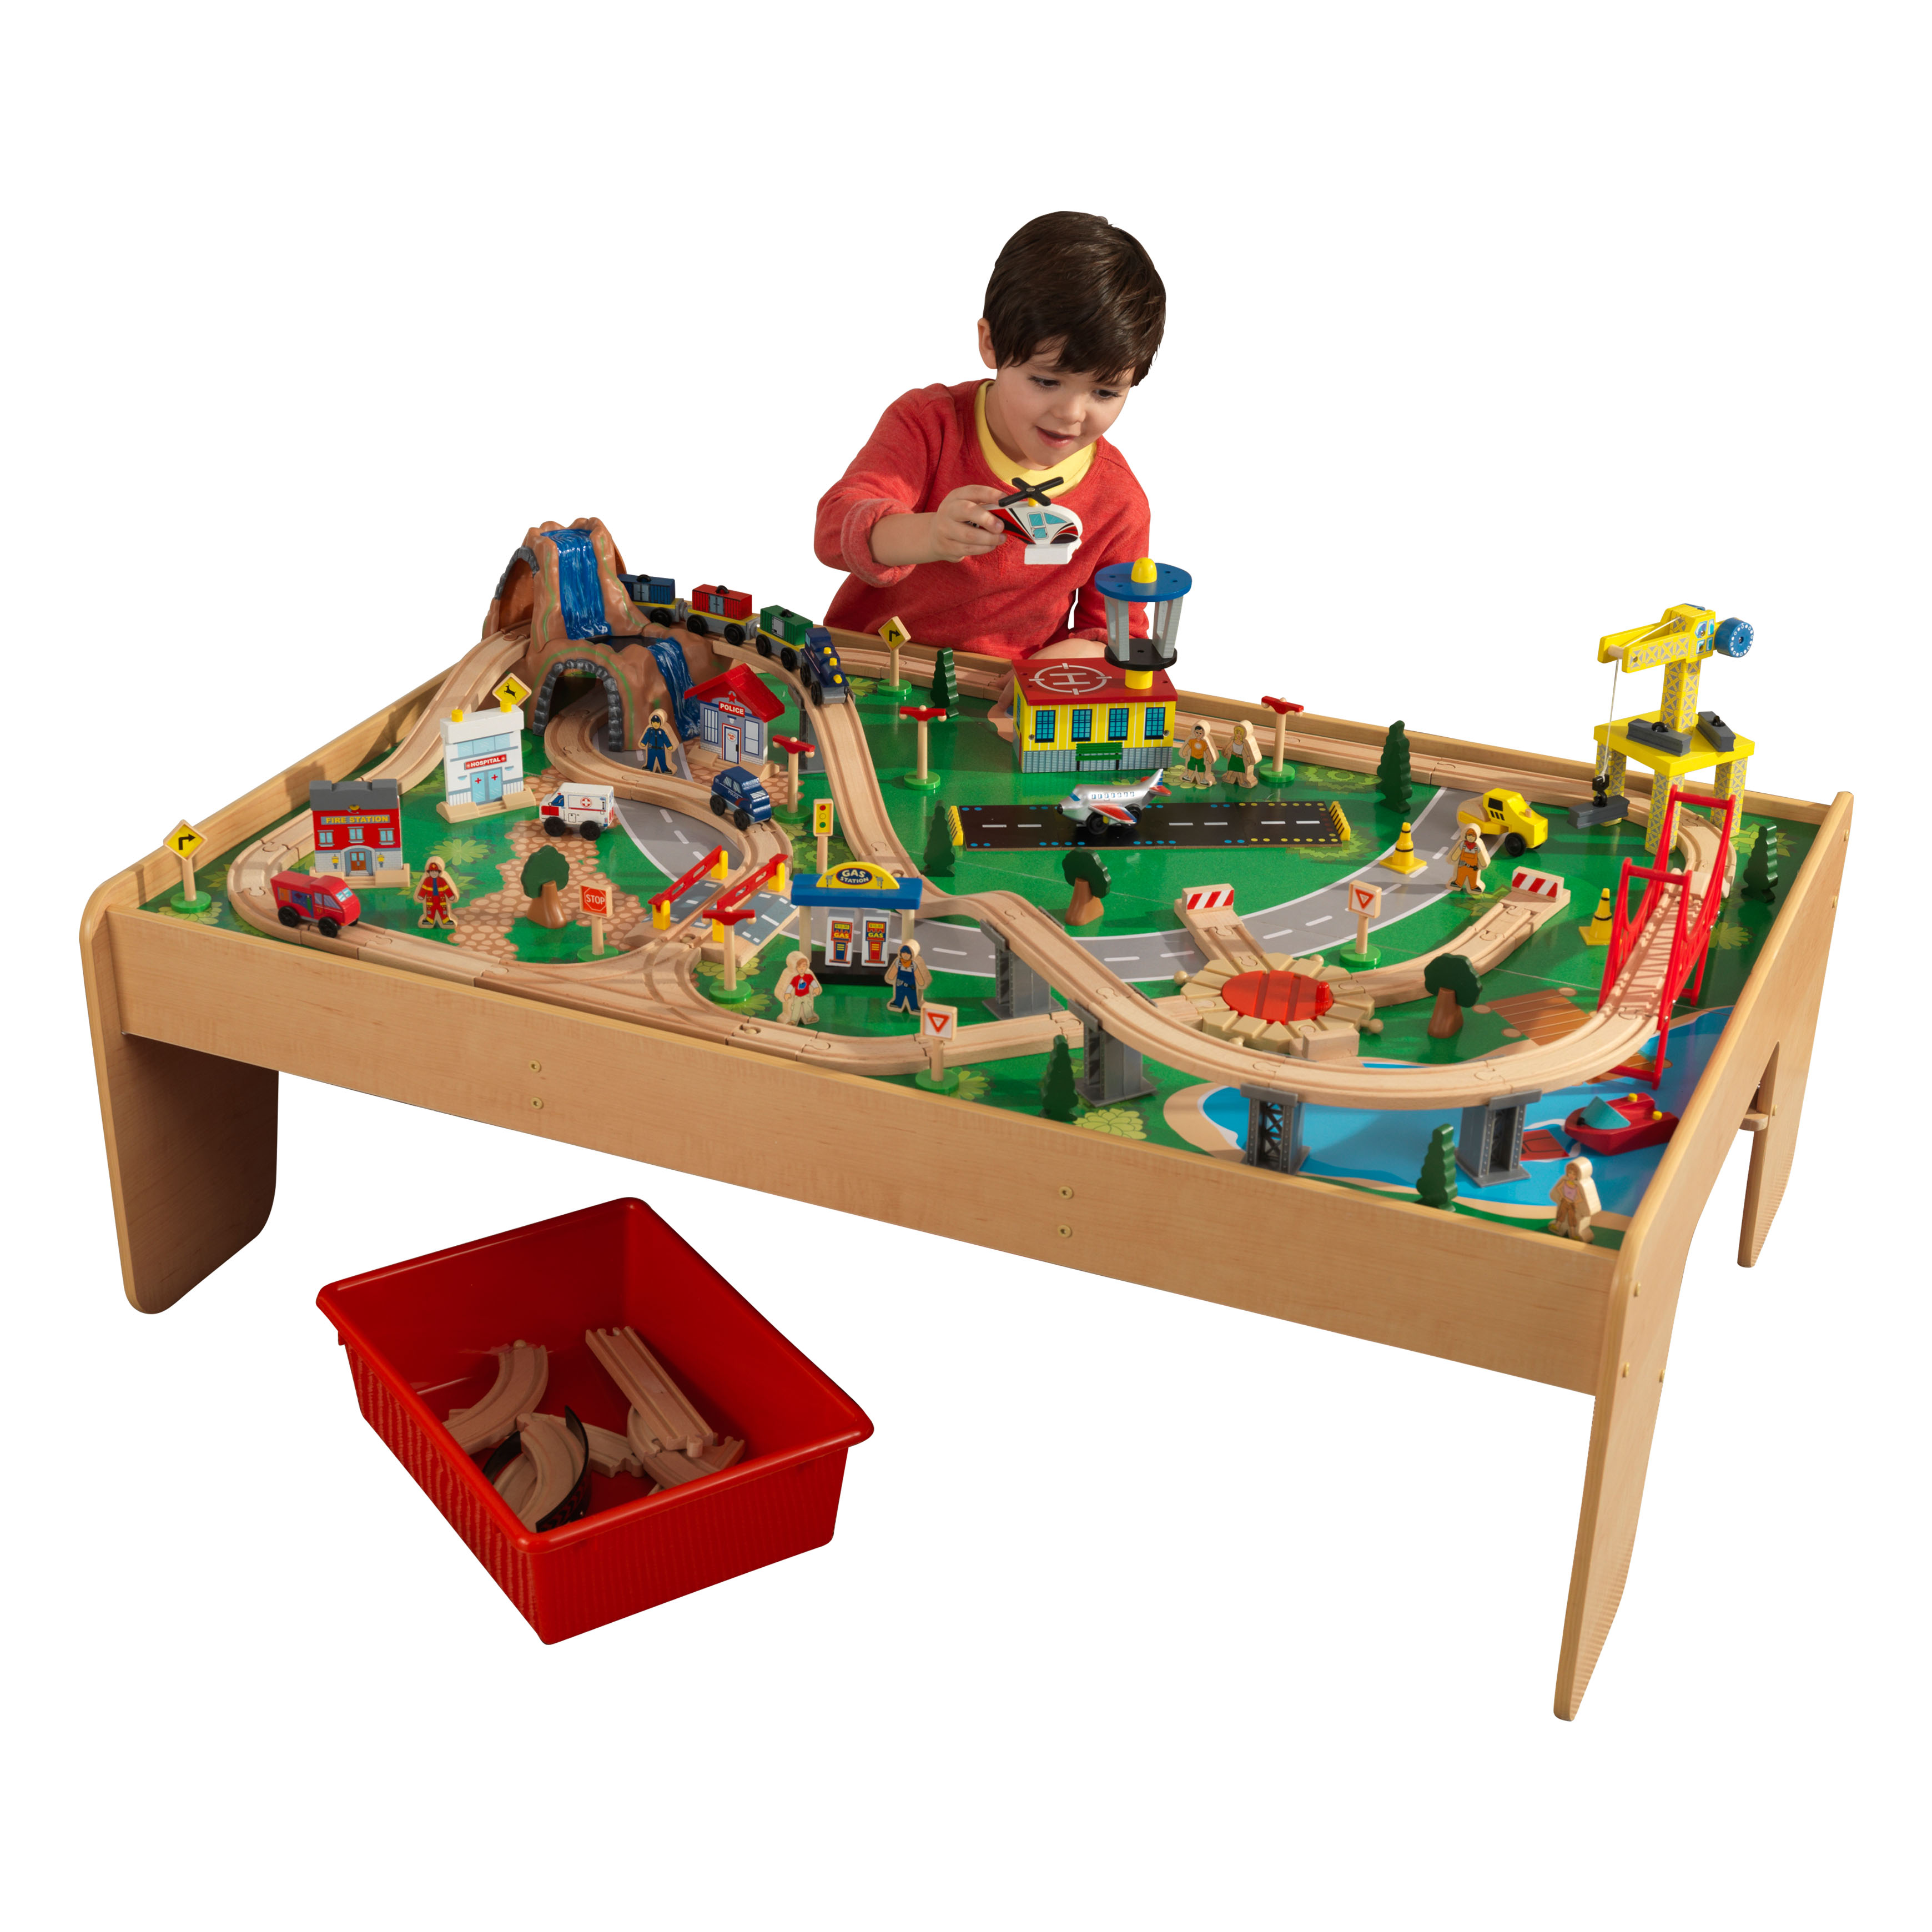 Amazing toddler Boy toys Images